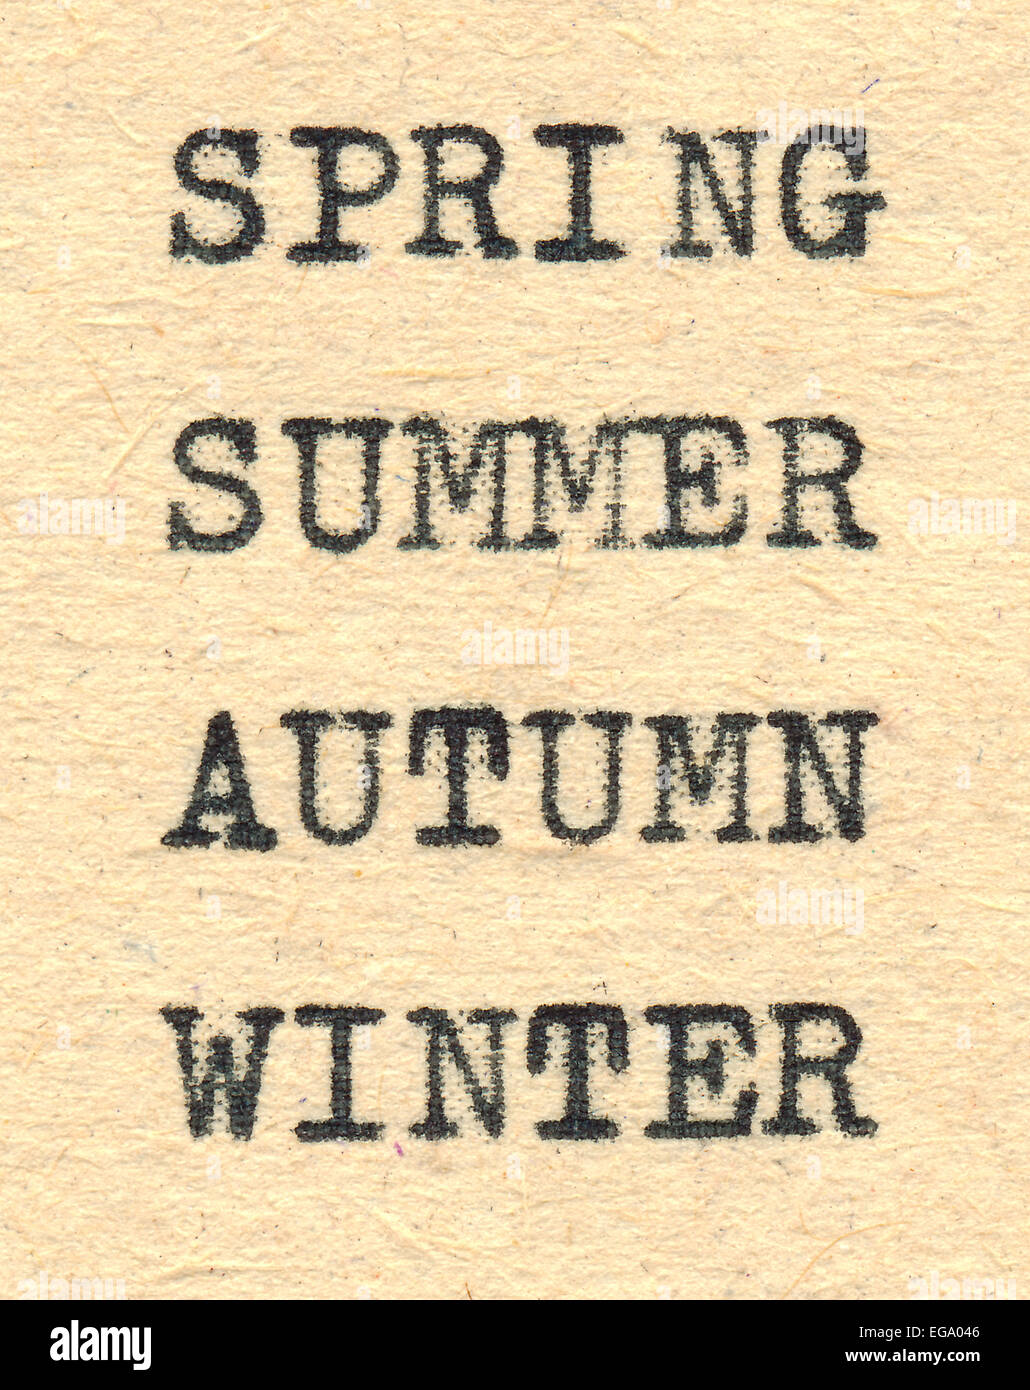 Season's names are written with a typewriter on old paper. - Stock Image